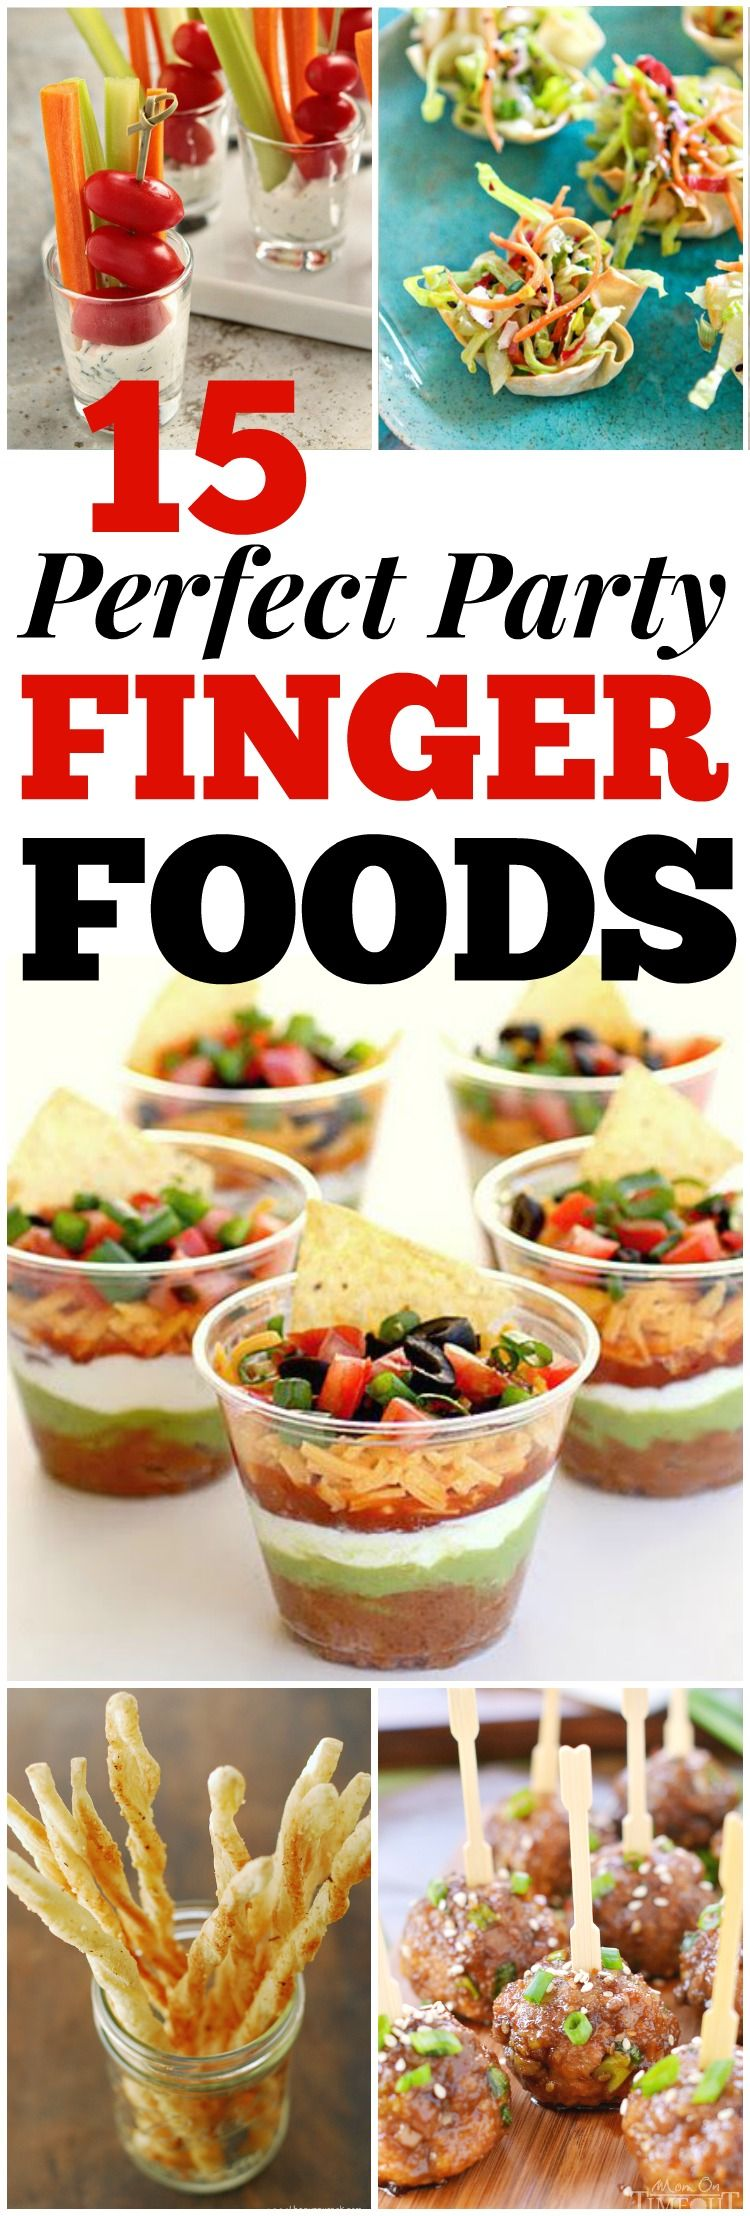 15 party finger foods the group board on pinterest pinterest looking for good hosting recipes these easy party finger food recipes include entrees appetizers sides and desserts to impress your friends and family forumfinder Choice Image